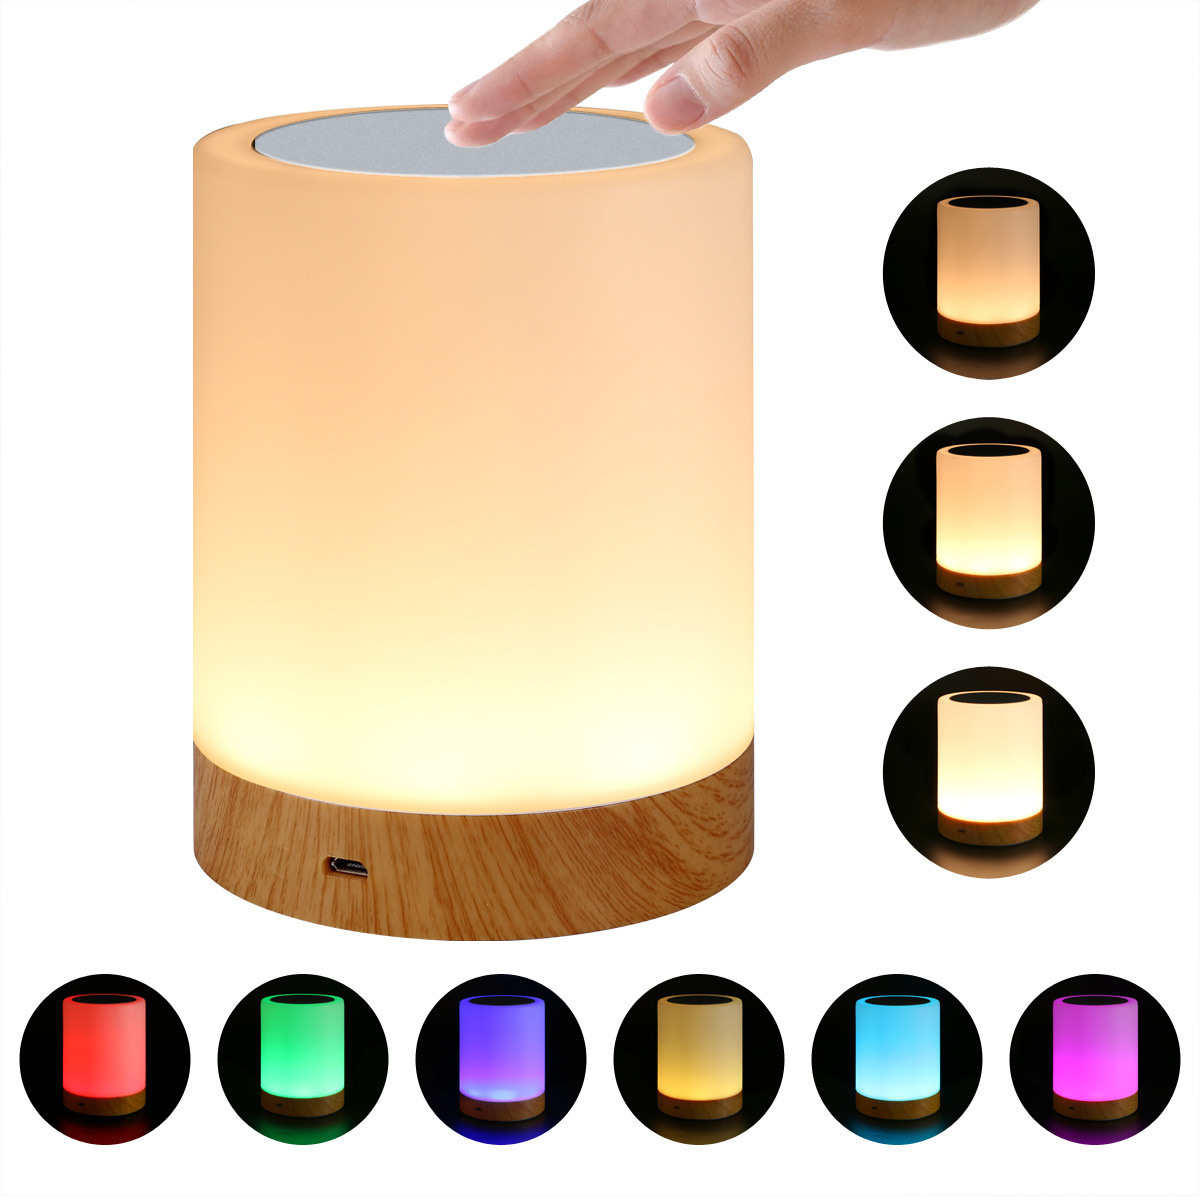 New Dimmable LED Colorful Creative Wood Grain Rechargeable Night Light Bedside Table Lamp Atmosphere Light Touch Clap Light